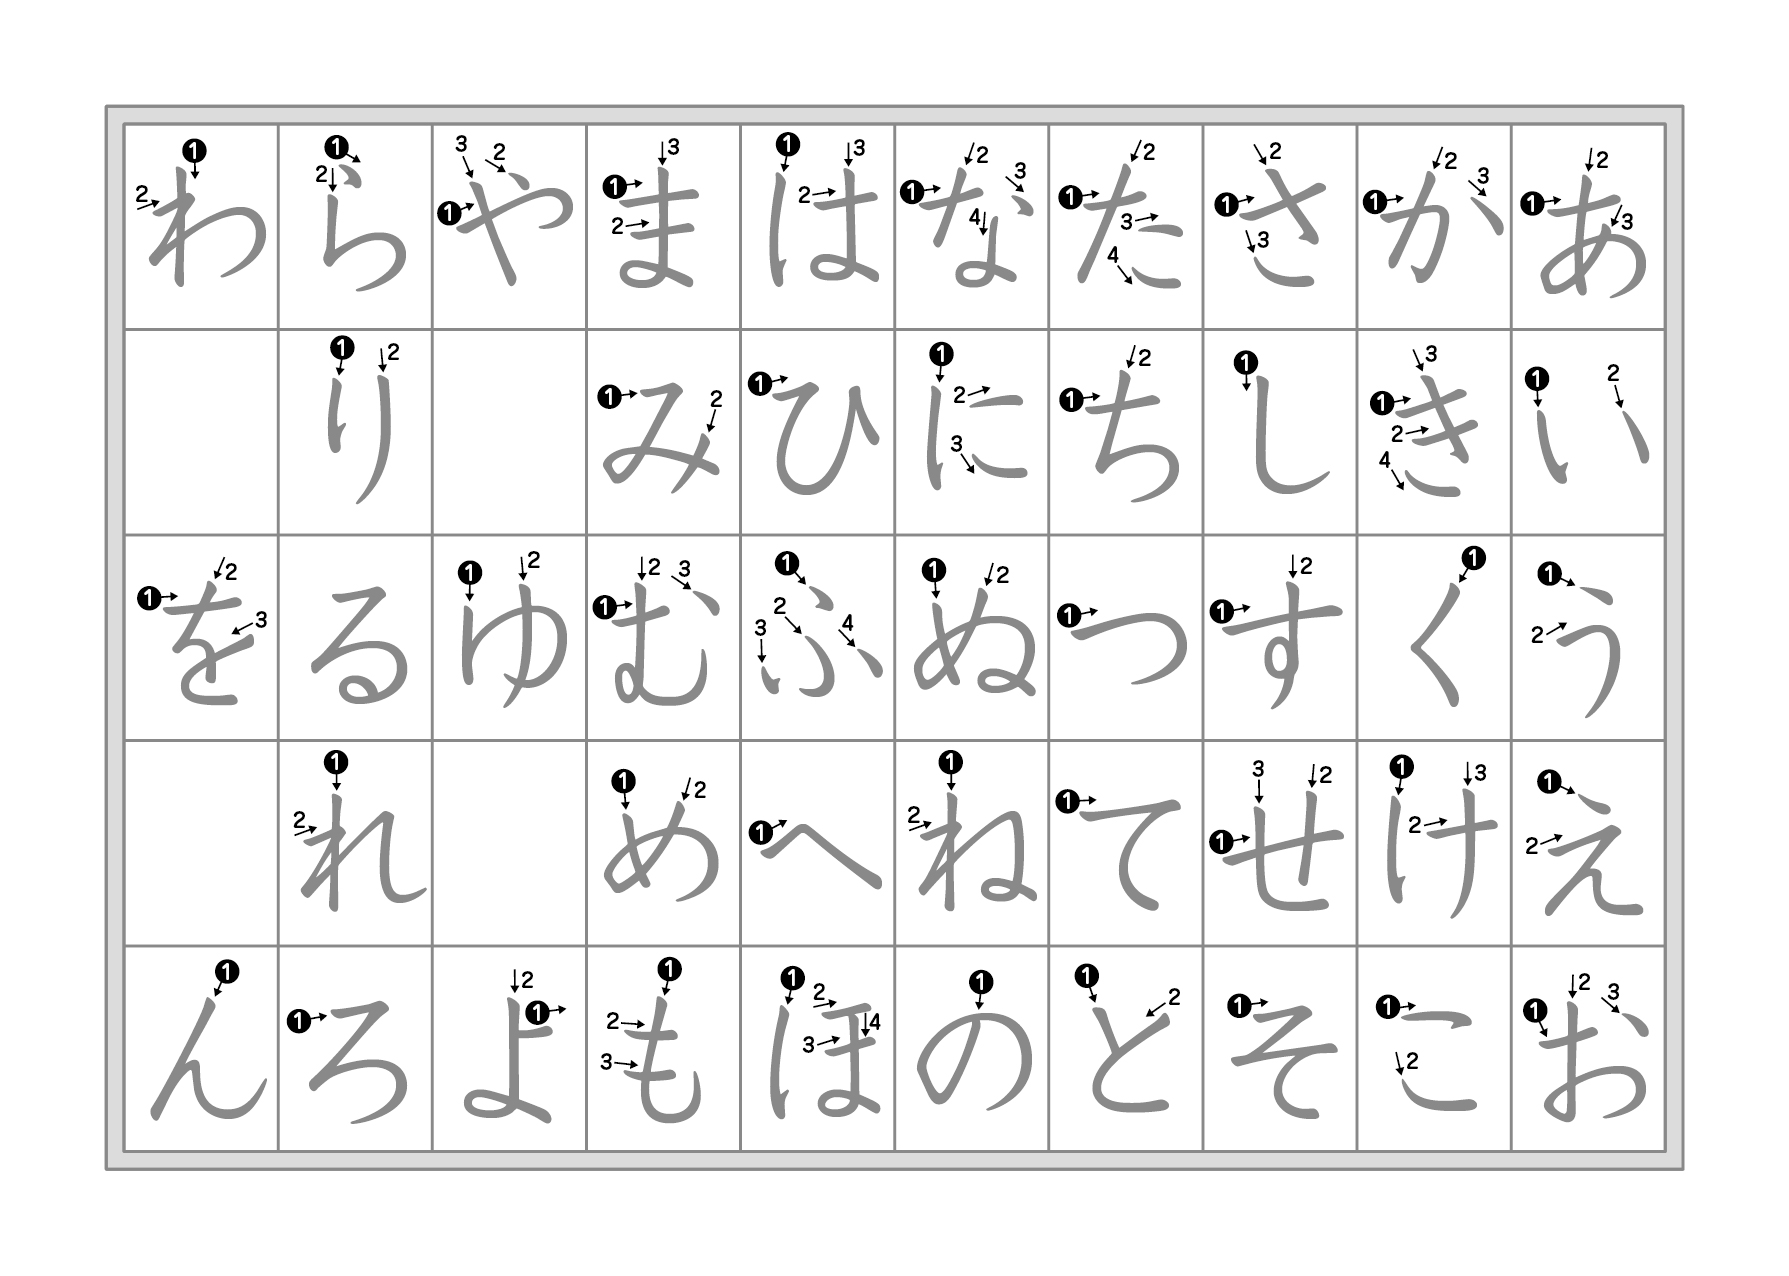 graphic relating to Hiragana Flash Cards Printable named 27 Downloadable Hiragana Charts